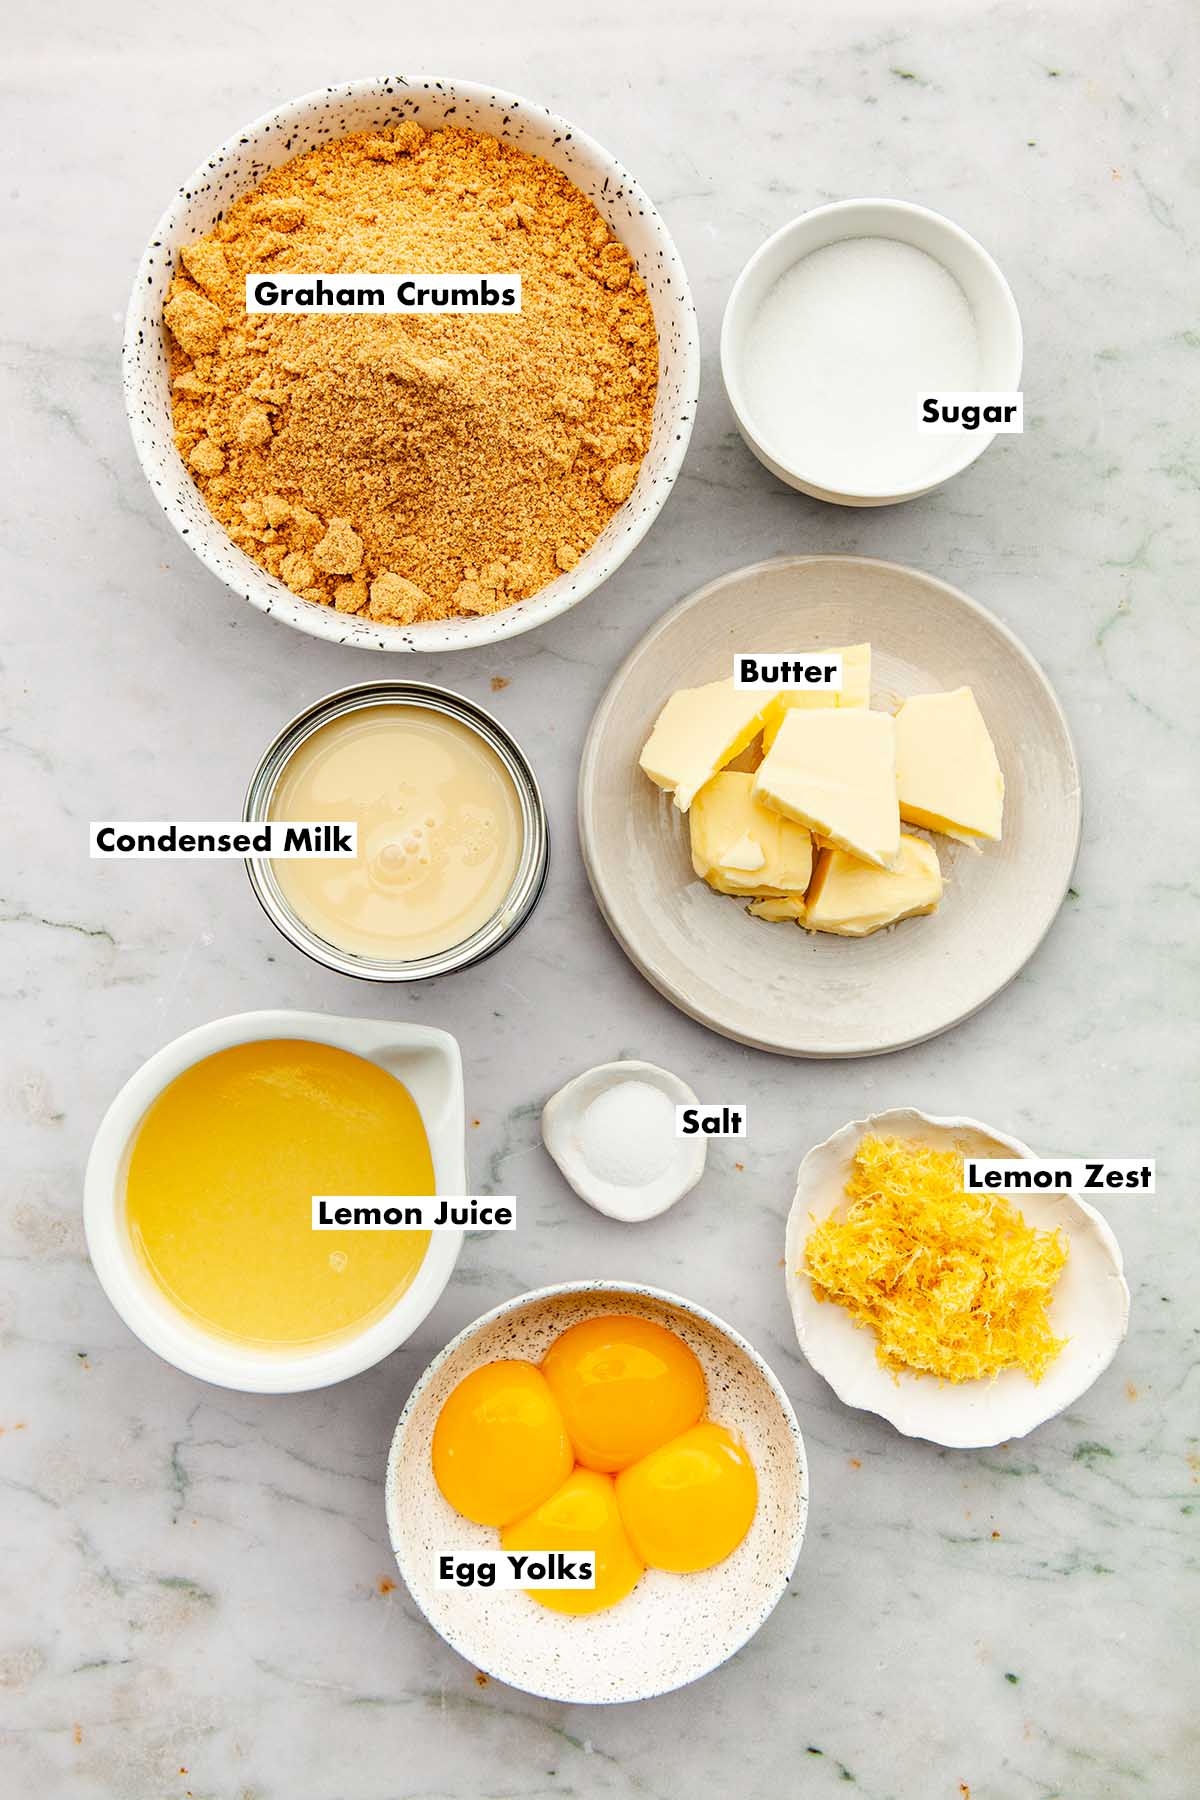 Ingredients to make condensed milk lemon slices.